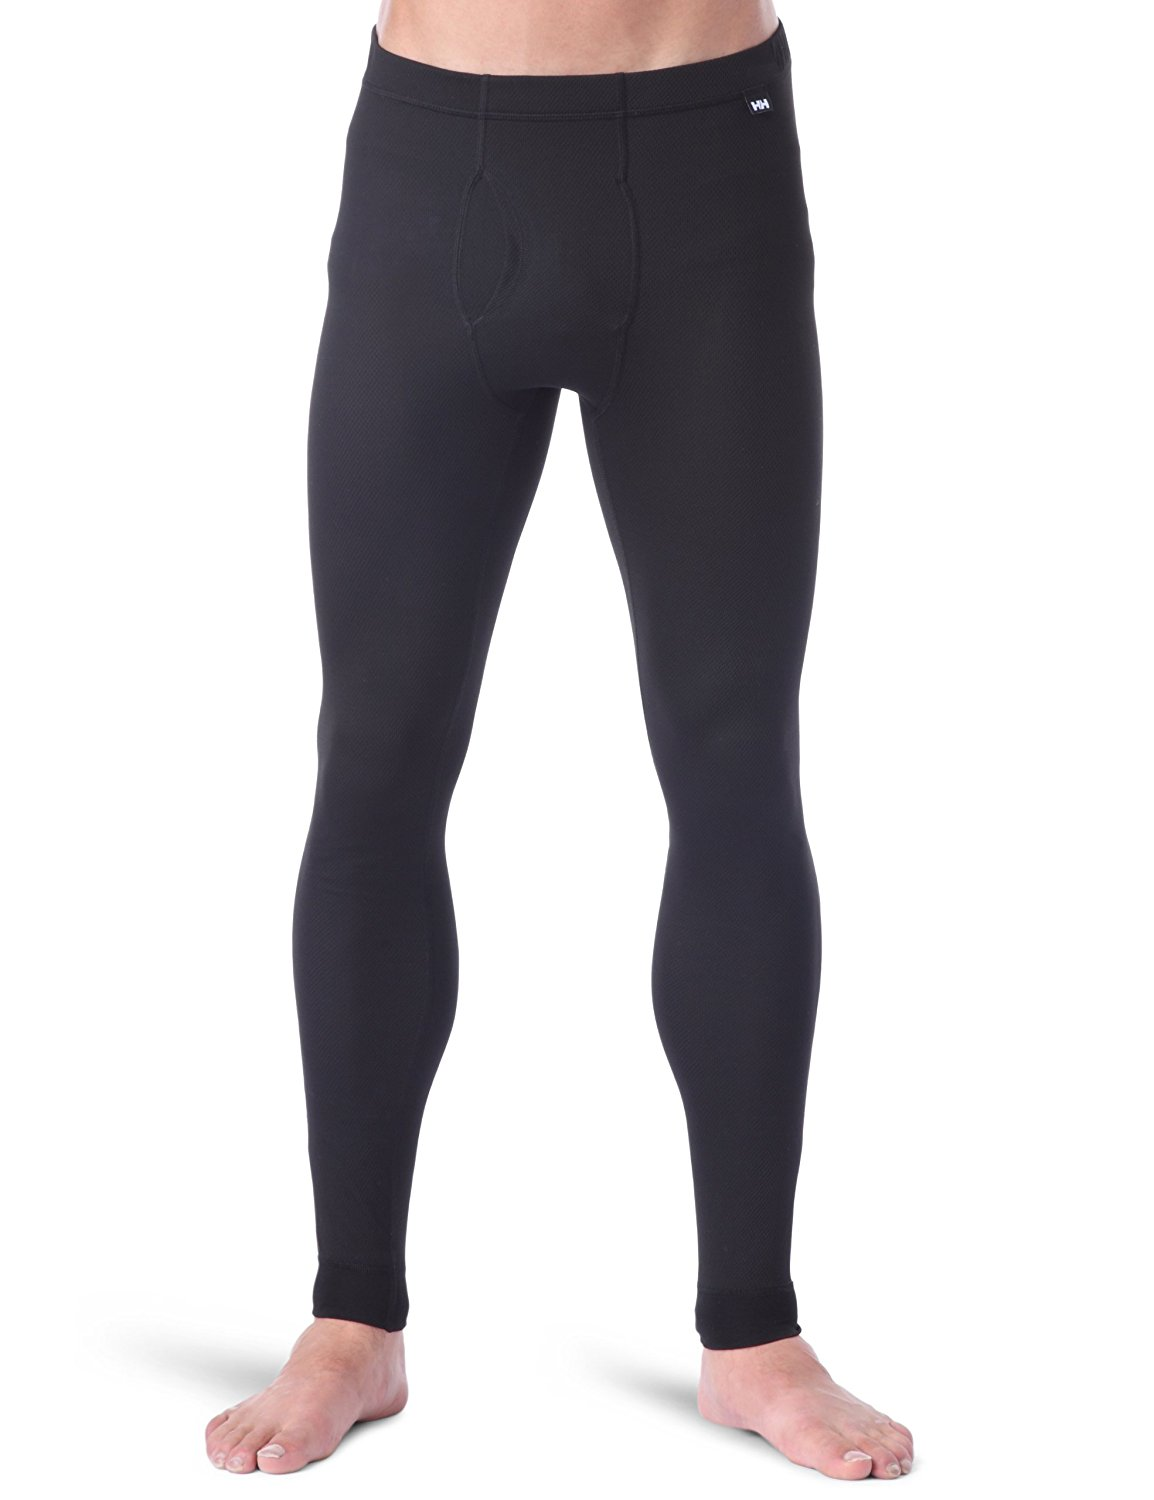 Helly Hansen Men's HH Dry Fly Base Layer Pant